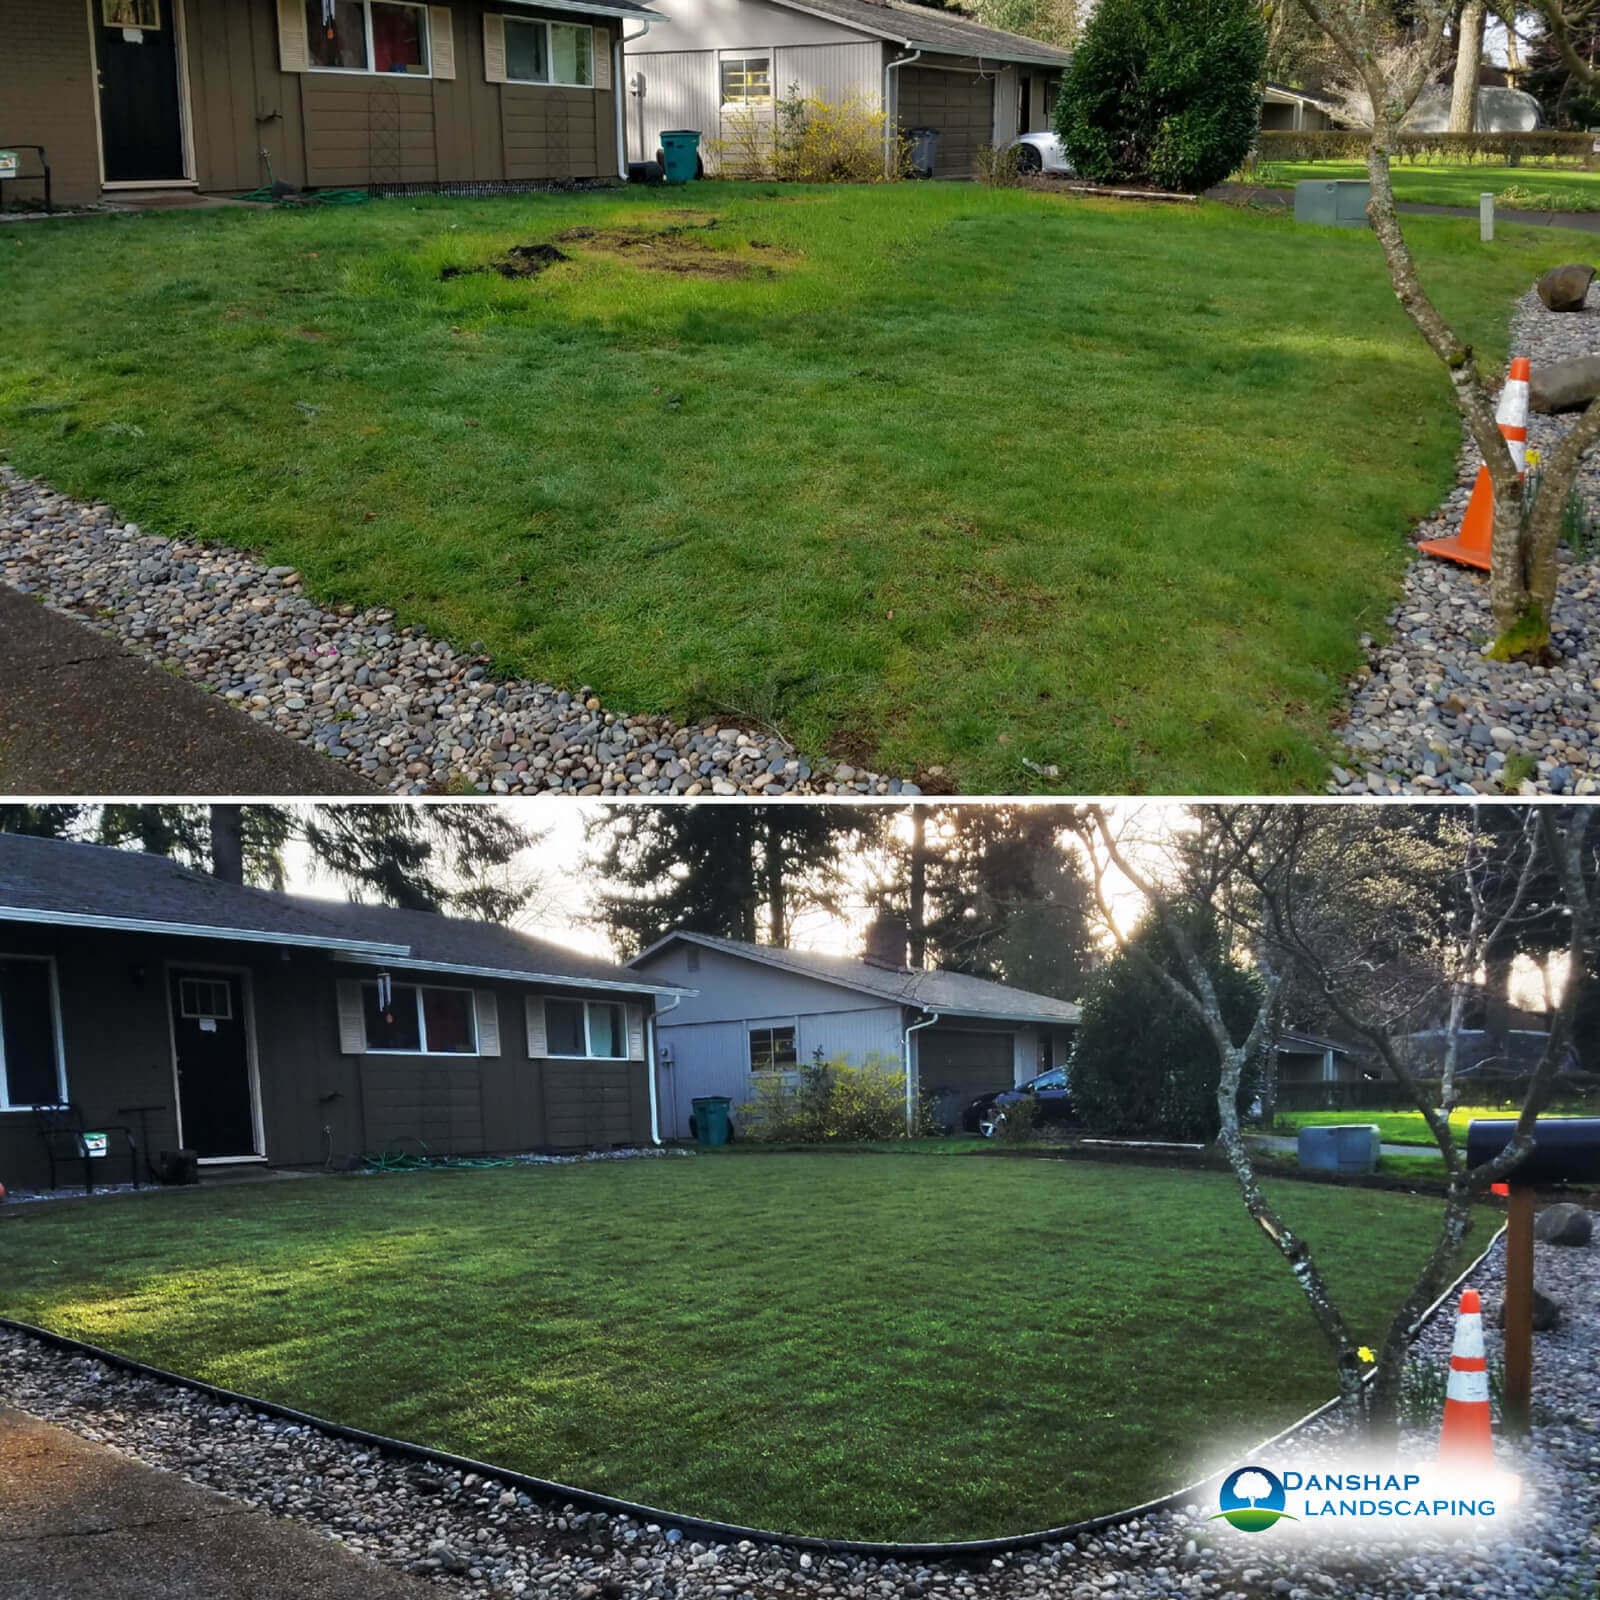 Sod-Replacement-Danshaplandscape-Gallery-49